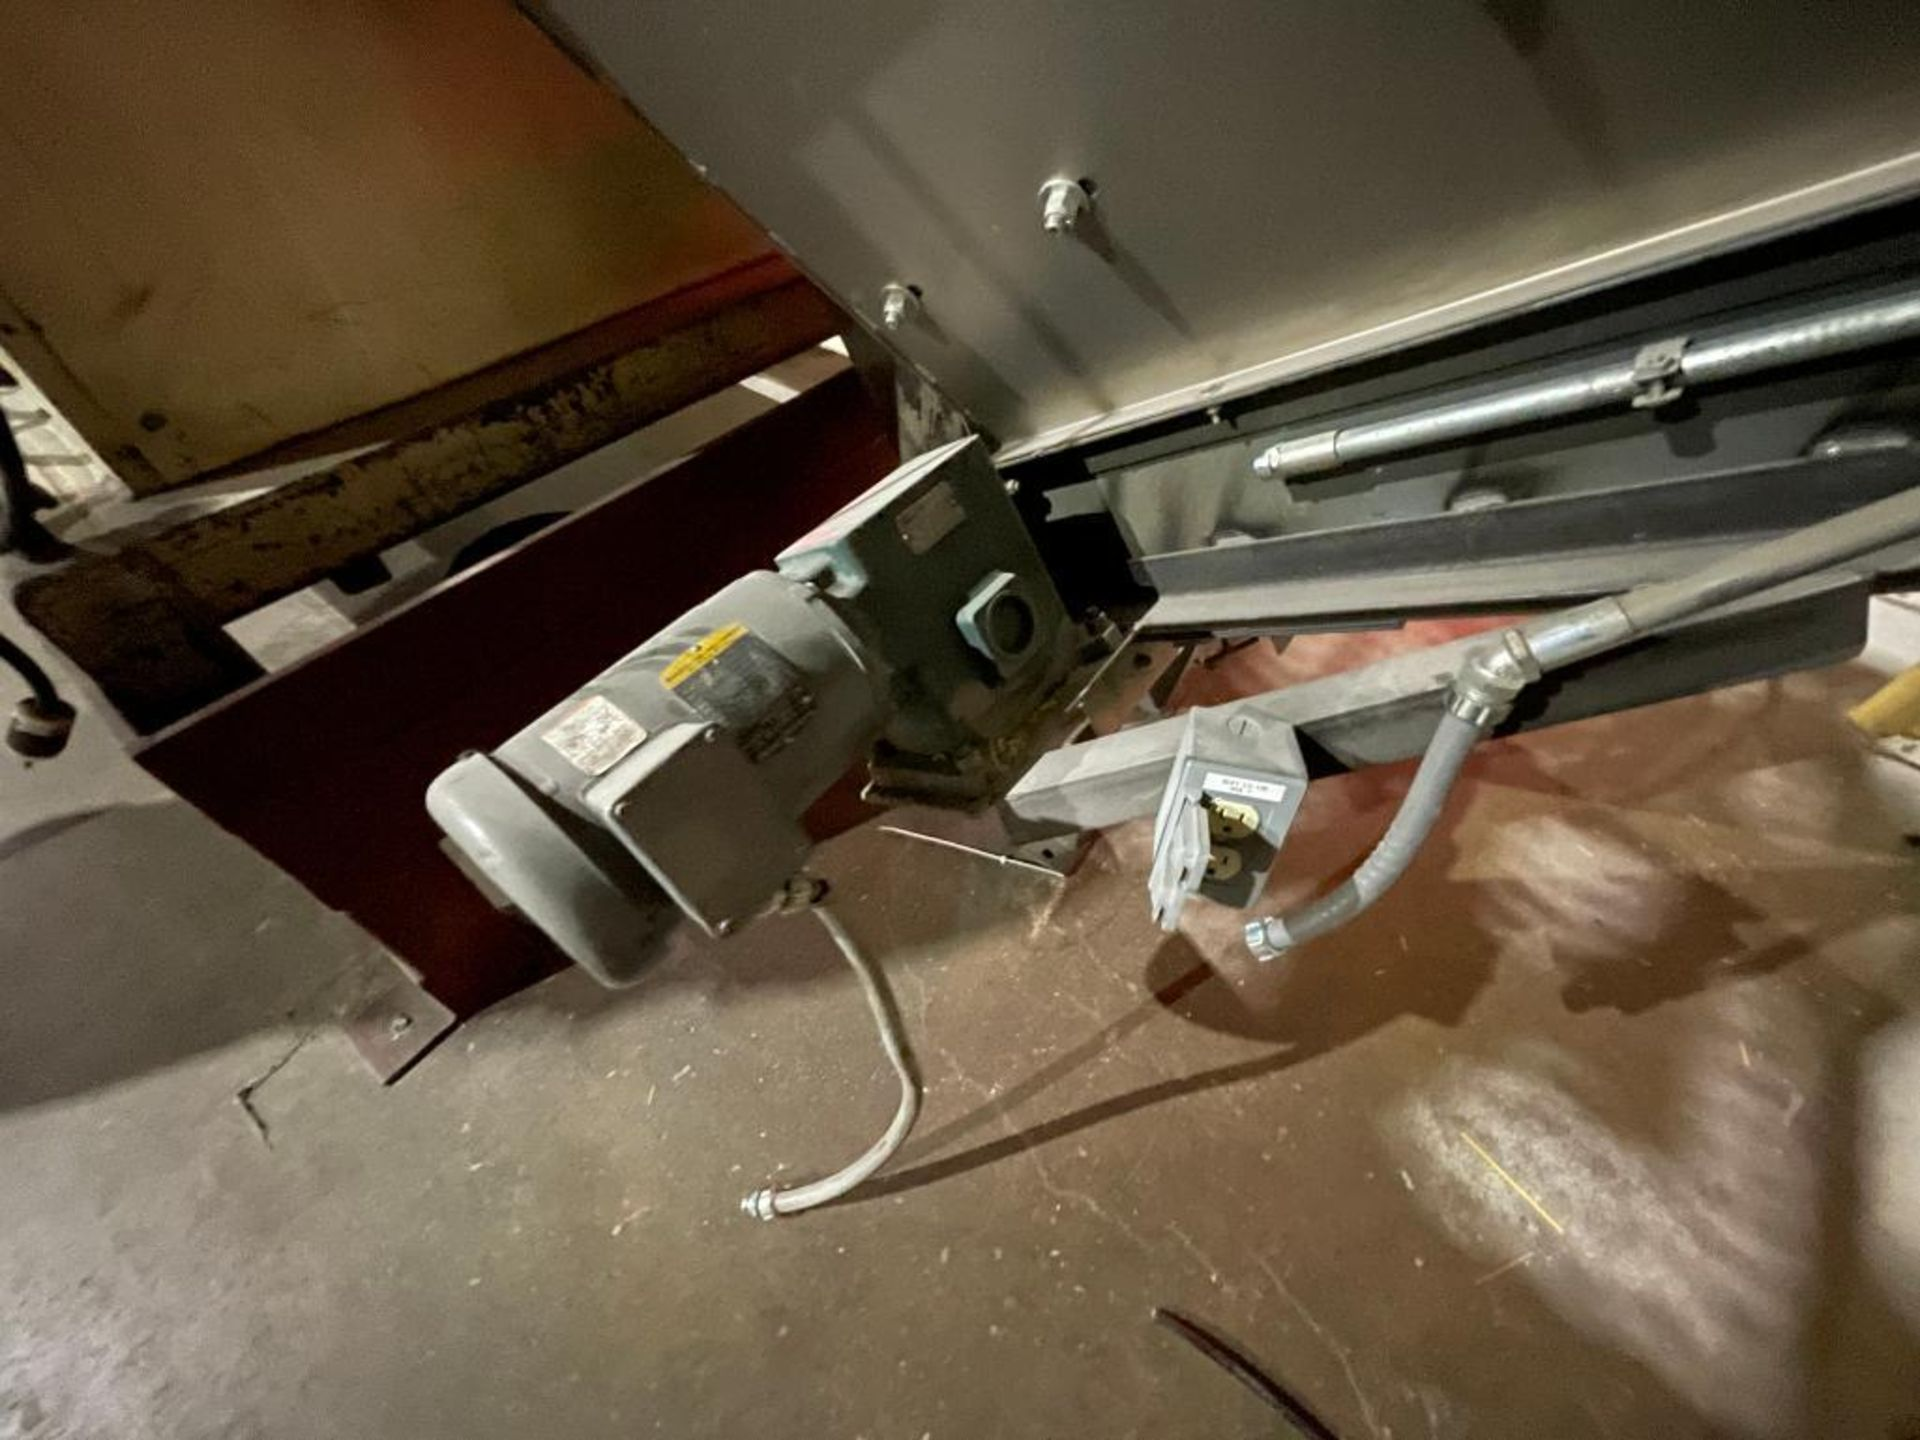 incline screw auger - Image 7 of 13